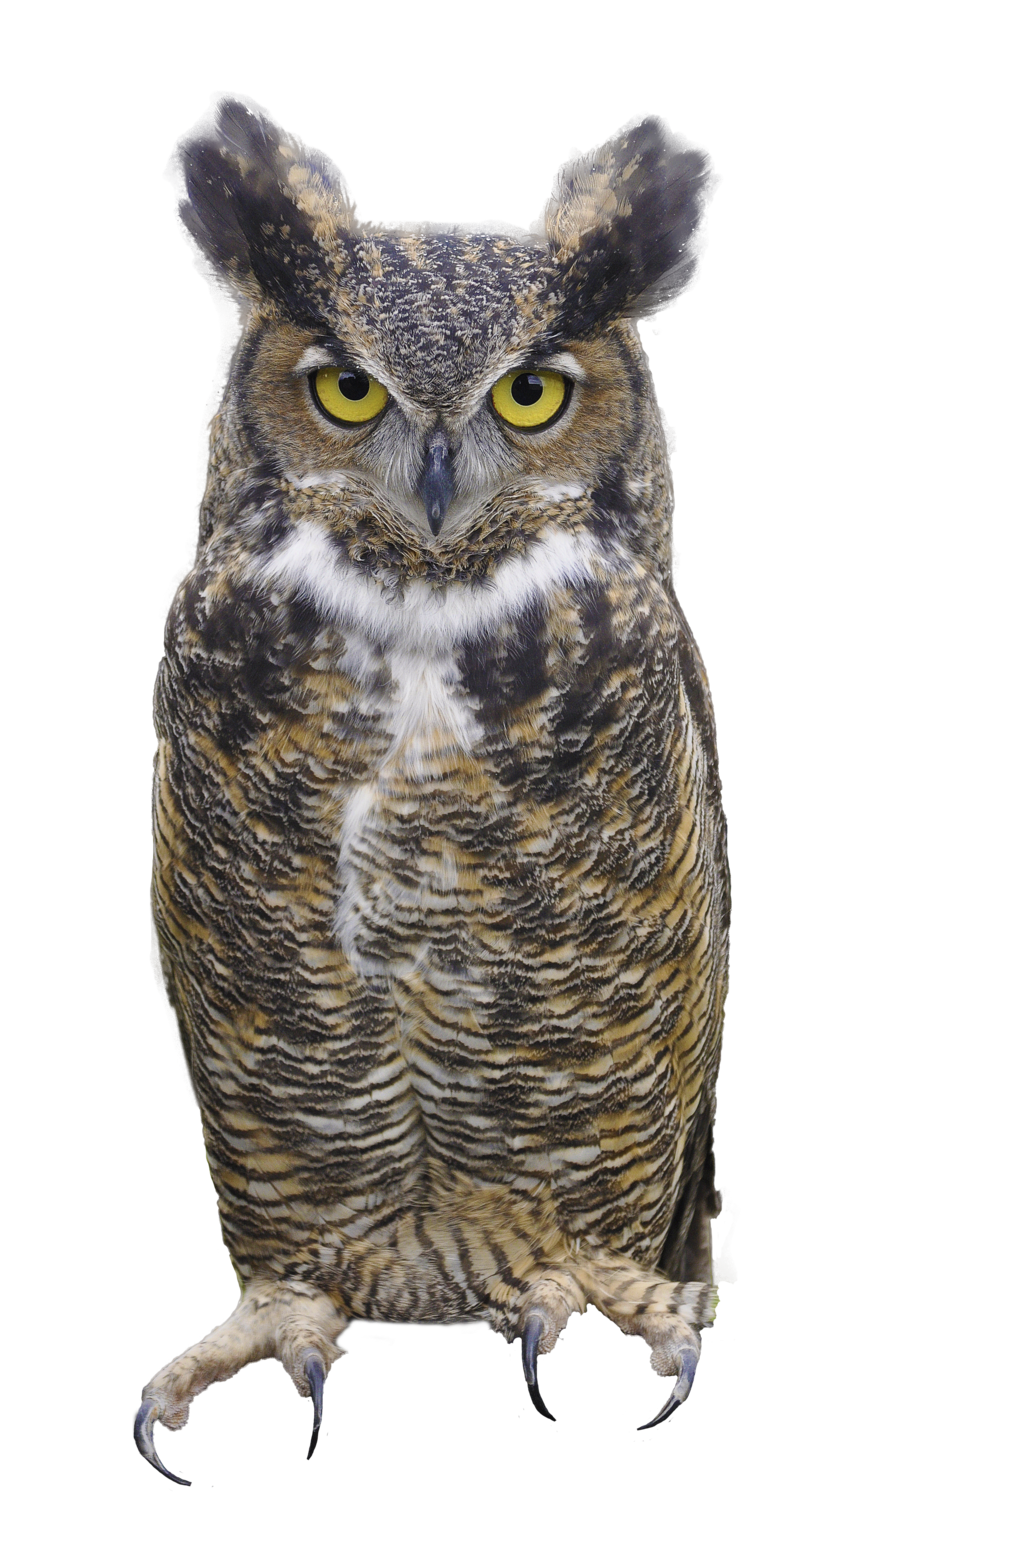 Owl png images. Transparent pluspng picture image